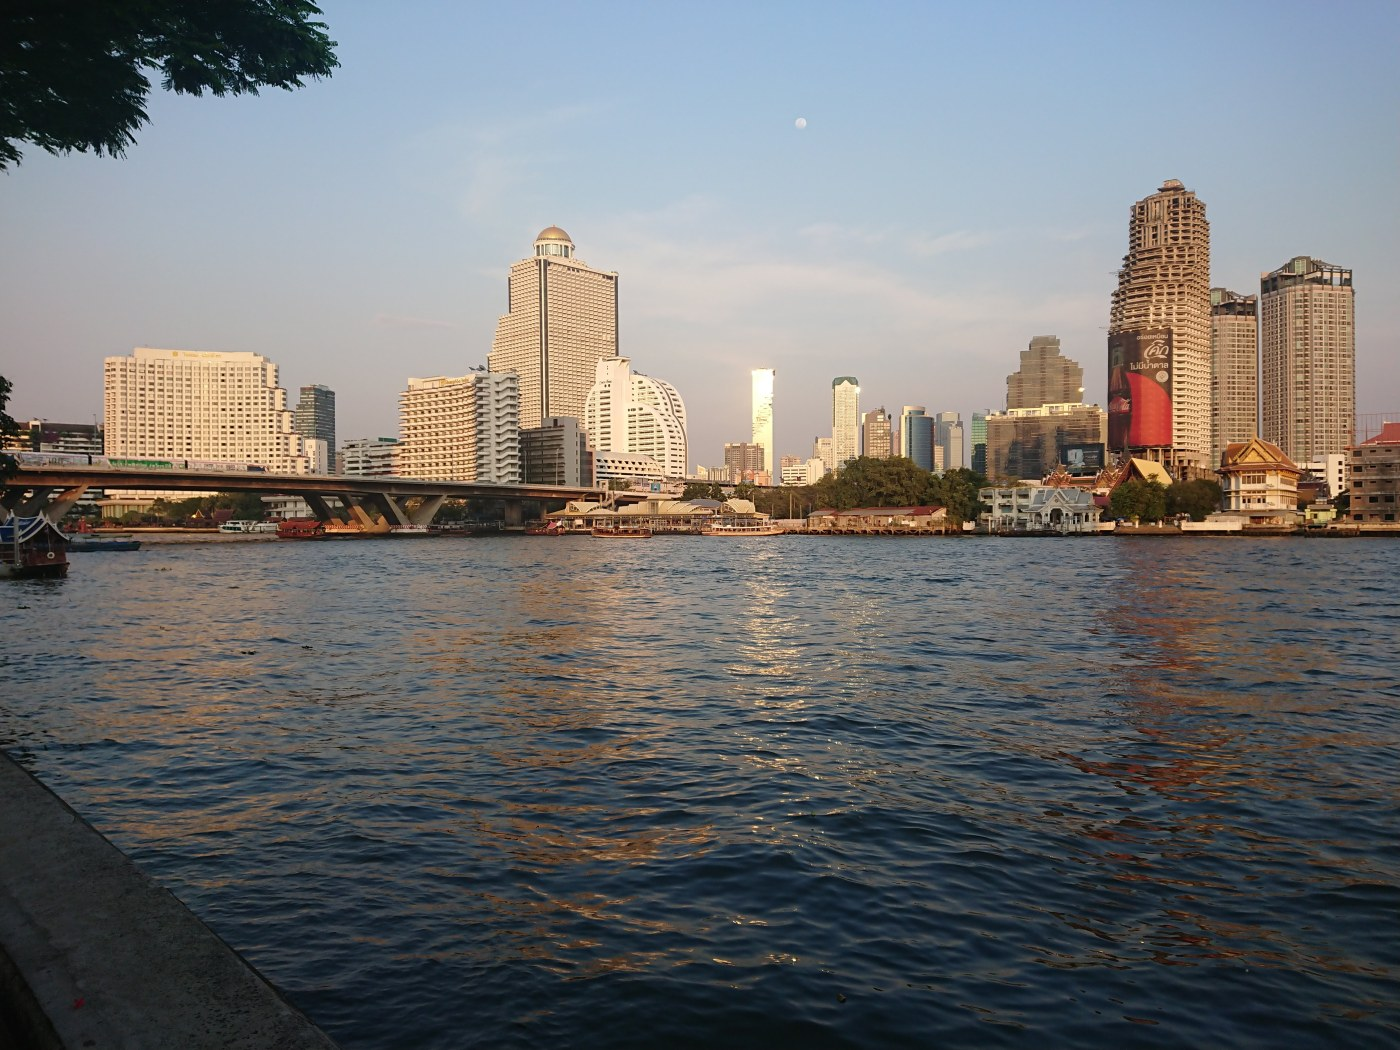 View across the Chao Phraya river from the Ibis Riverside hotel.